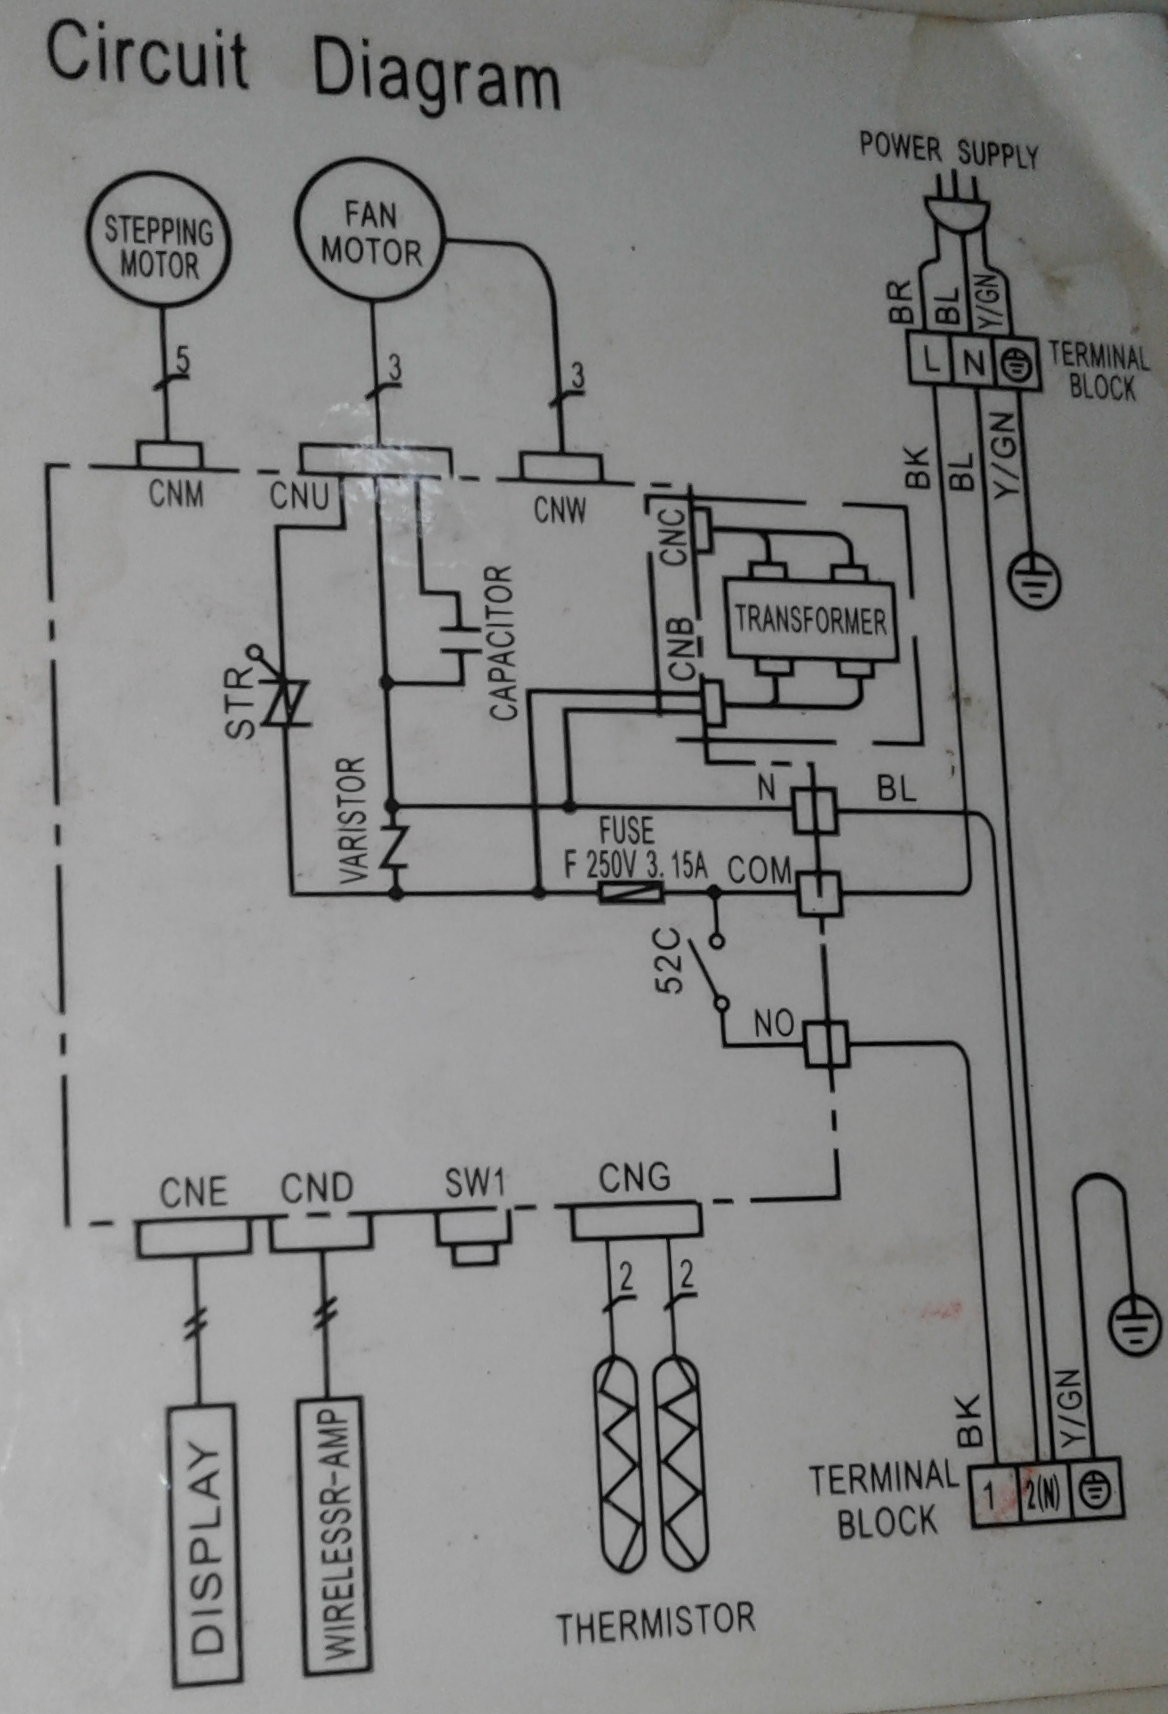 need wiring help for aircon blower fan